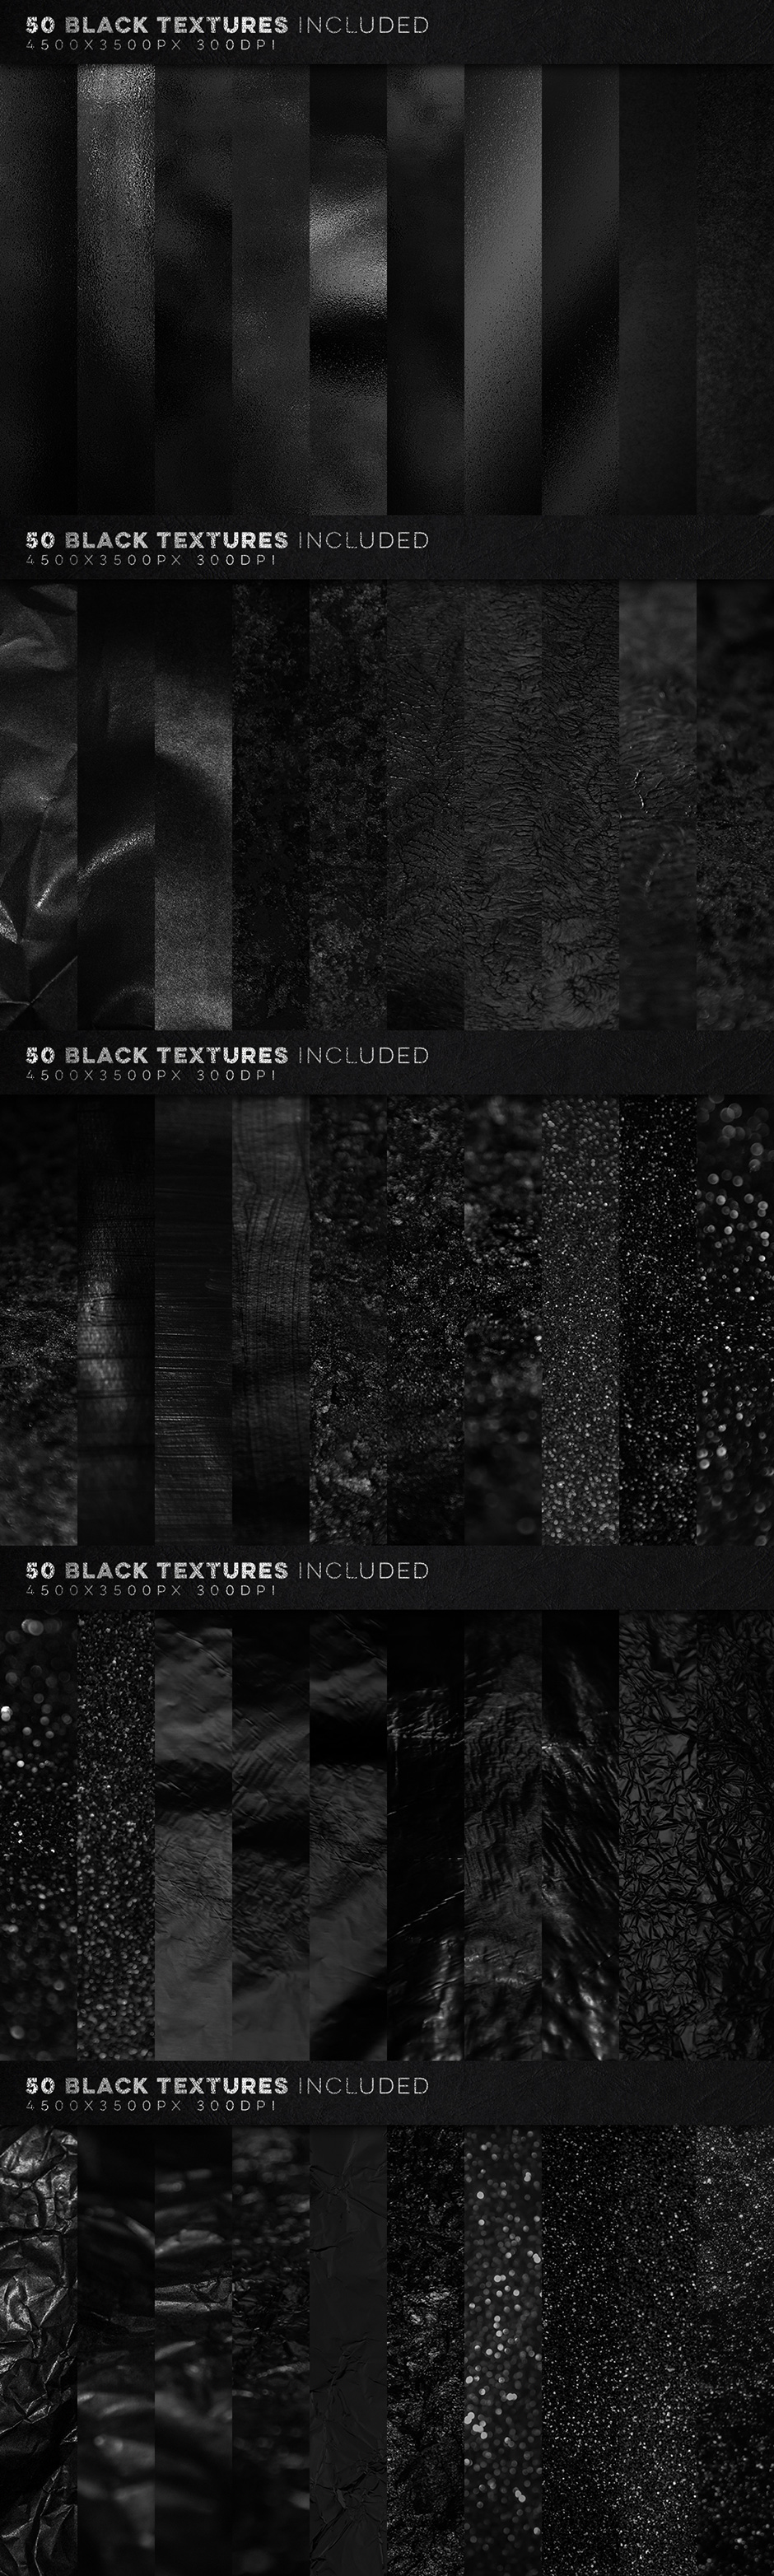 The Textures, Patterns and Backgrounds Ultimate Bundle